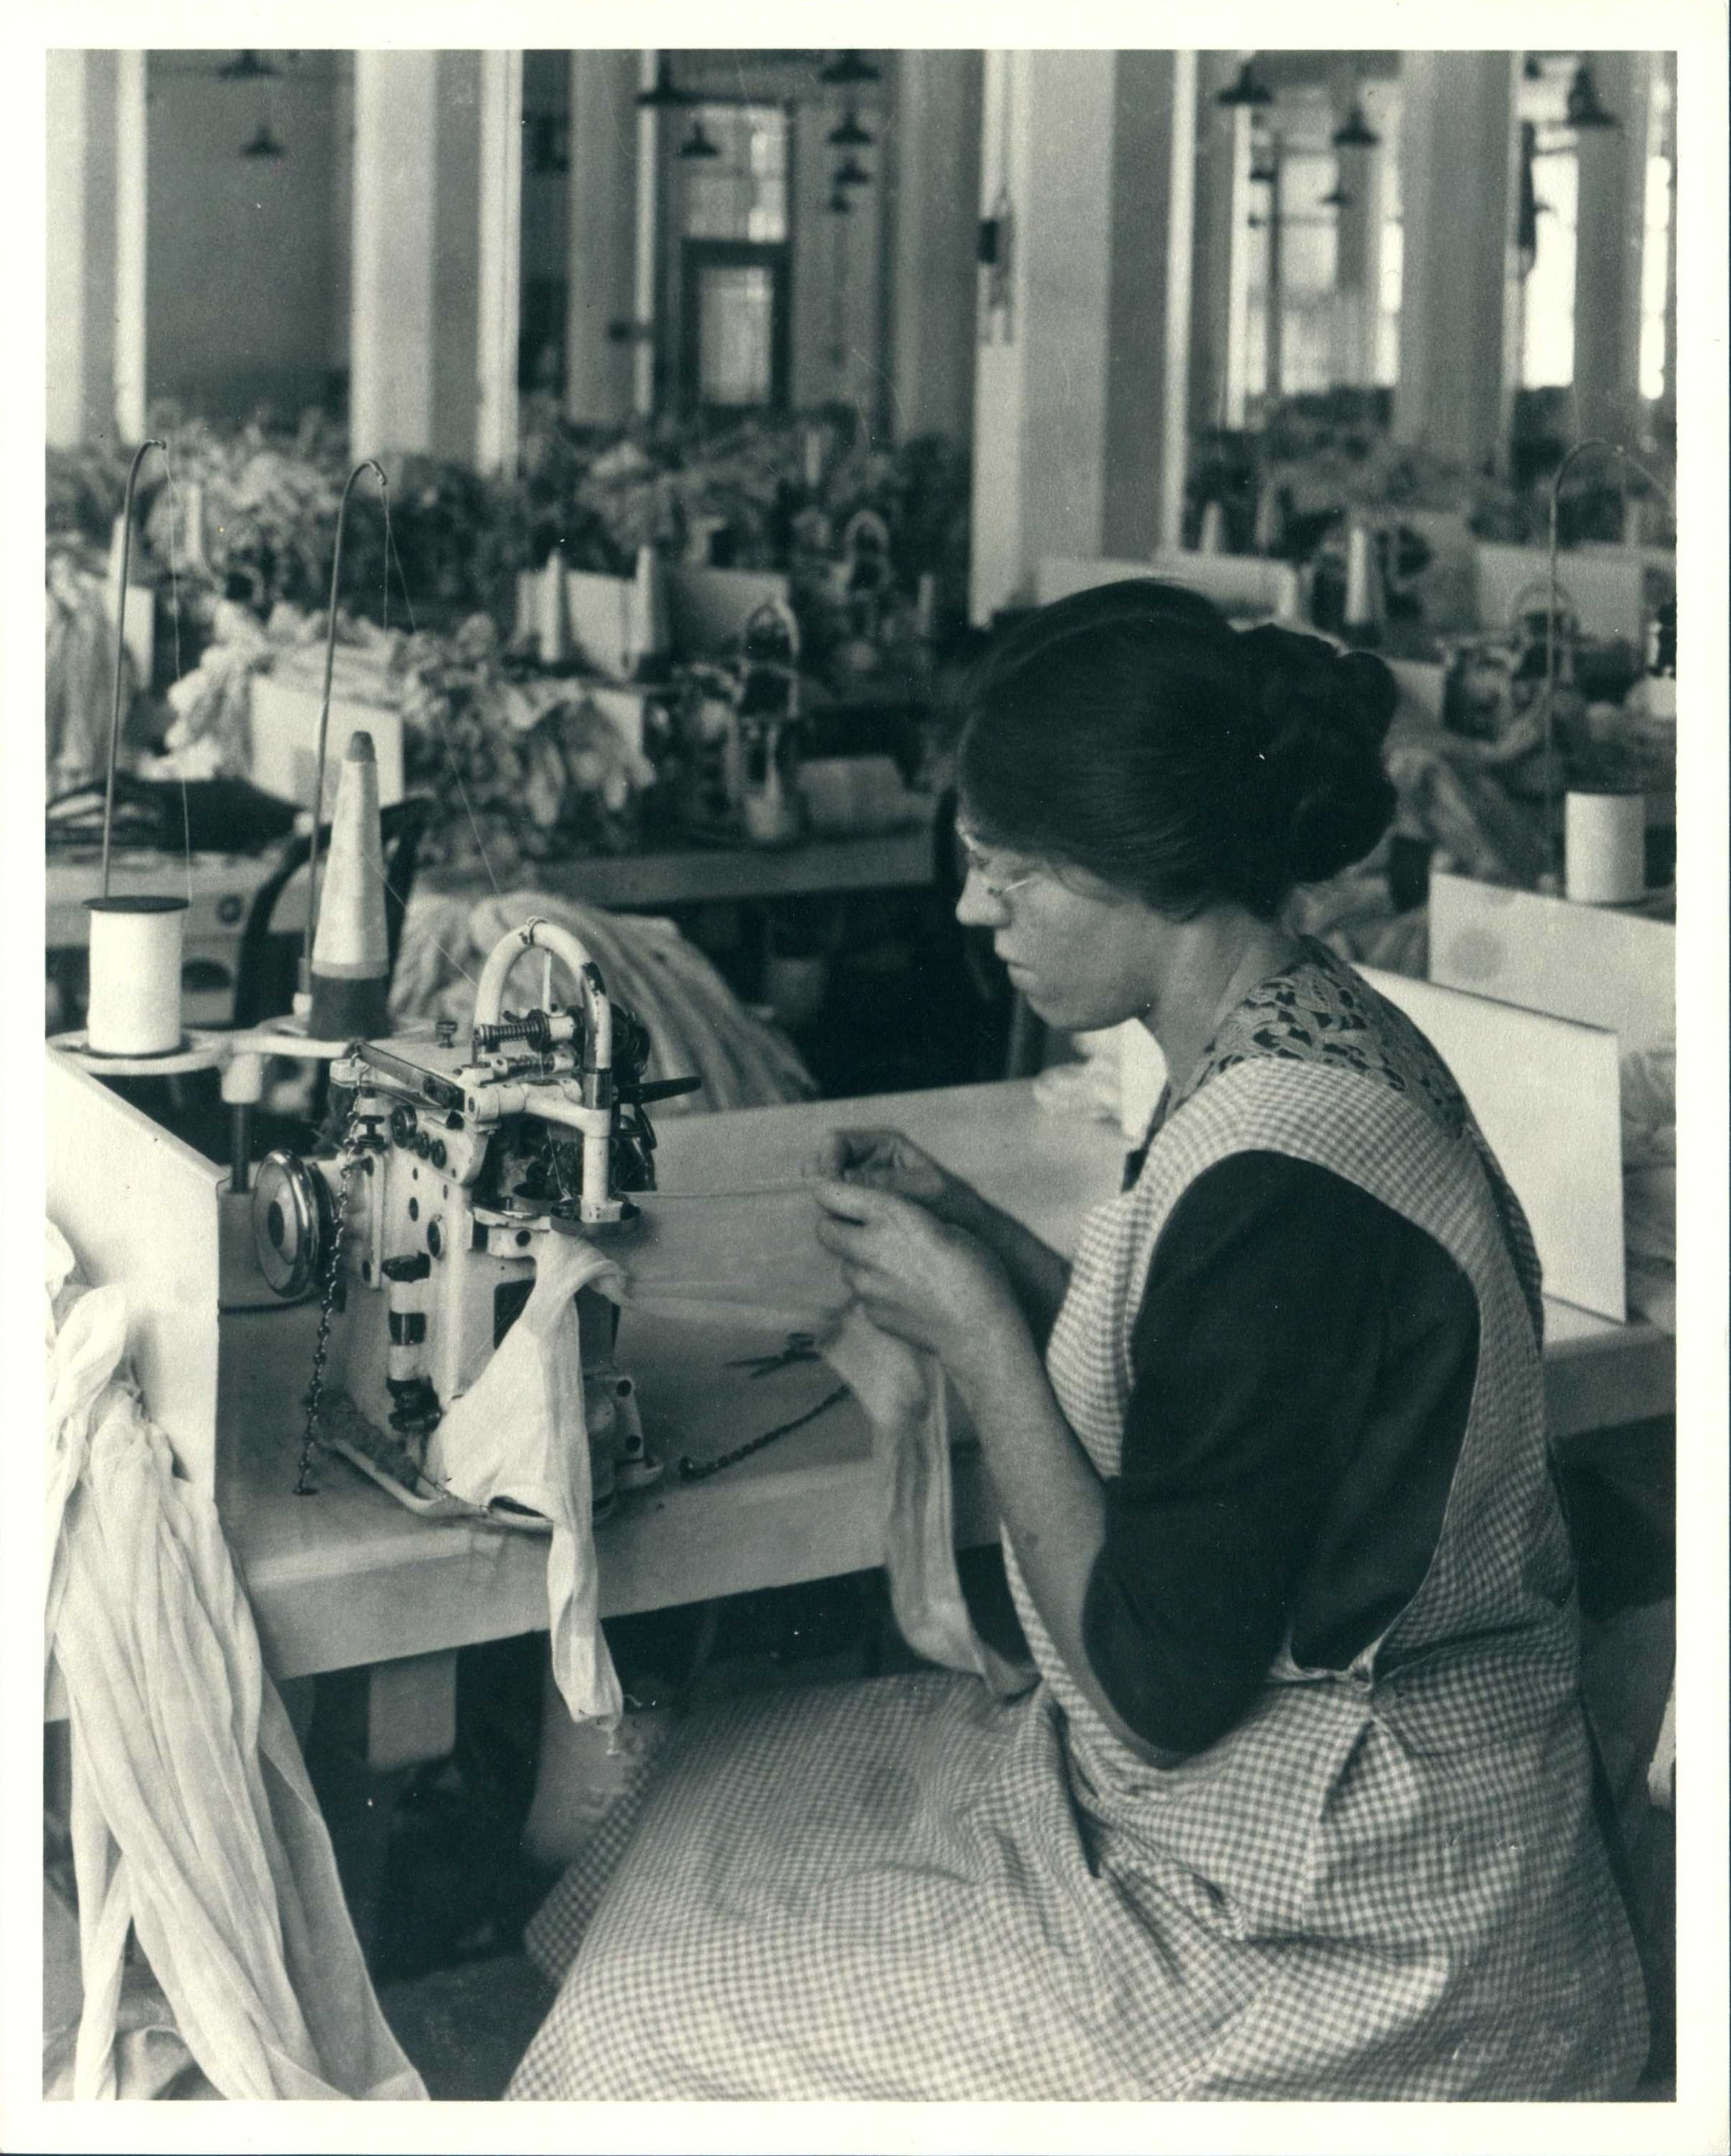 Woman in factory sitting at sewing machine seaming knit stockings.